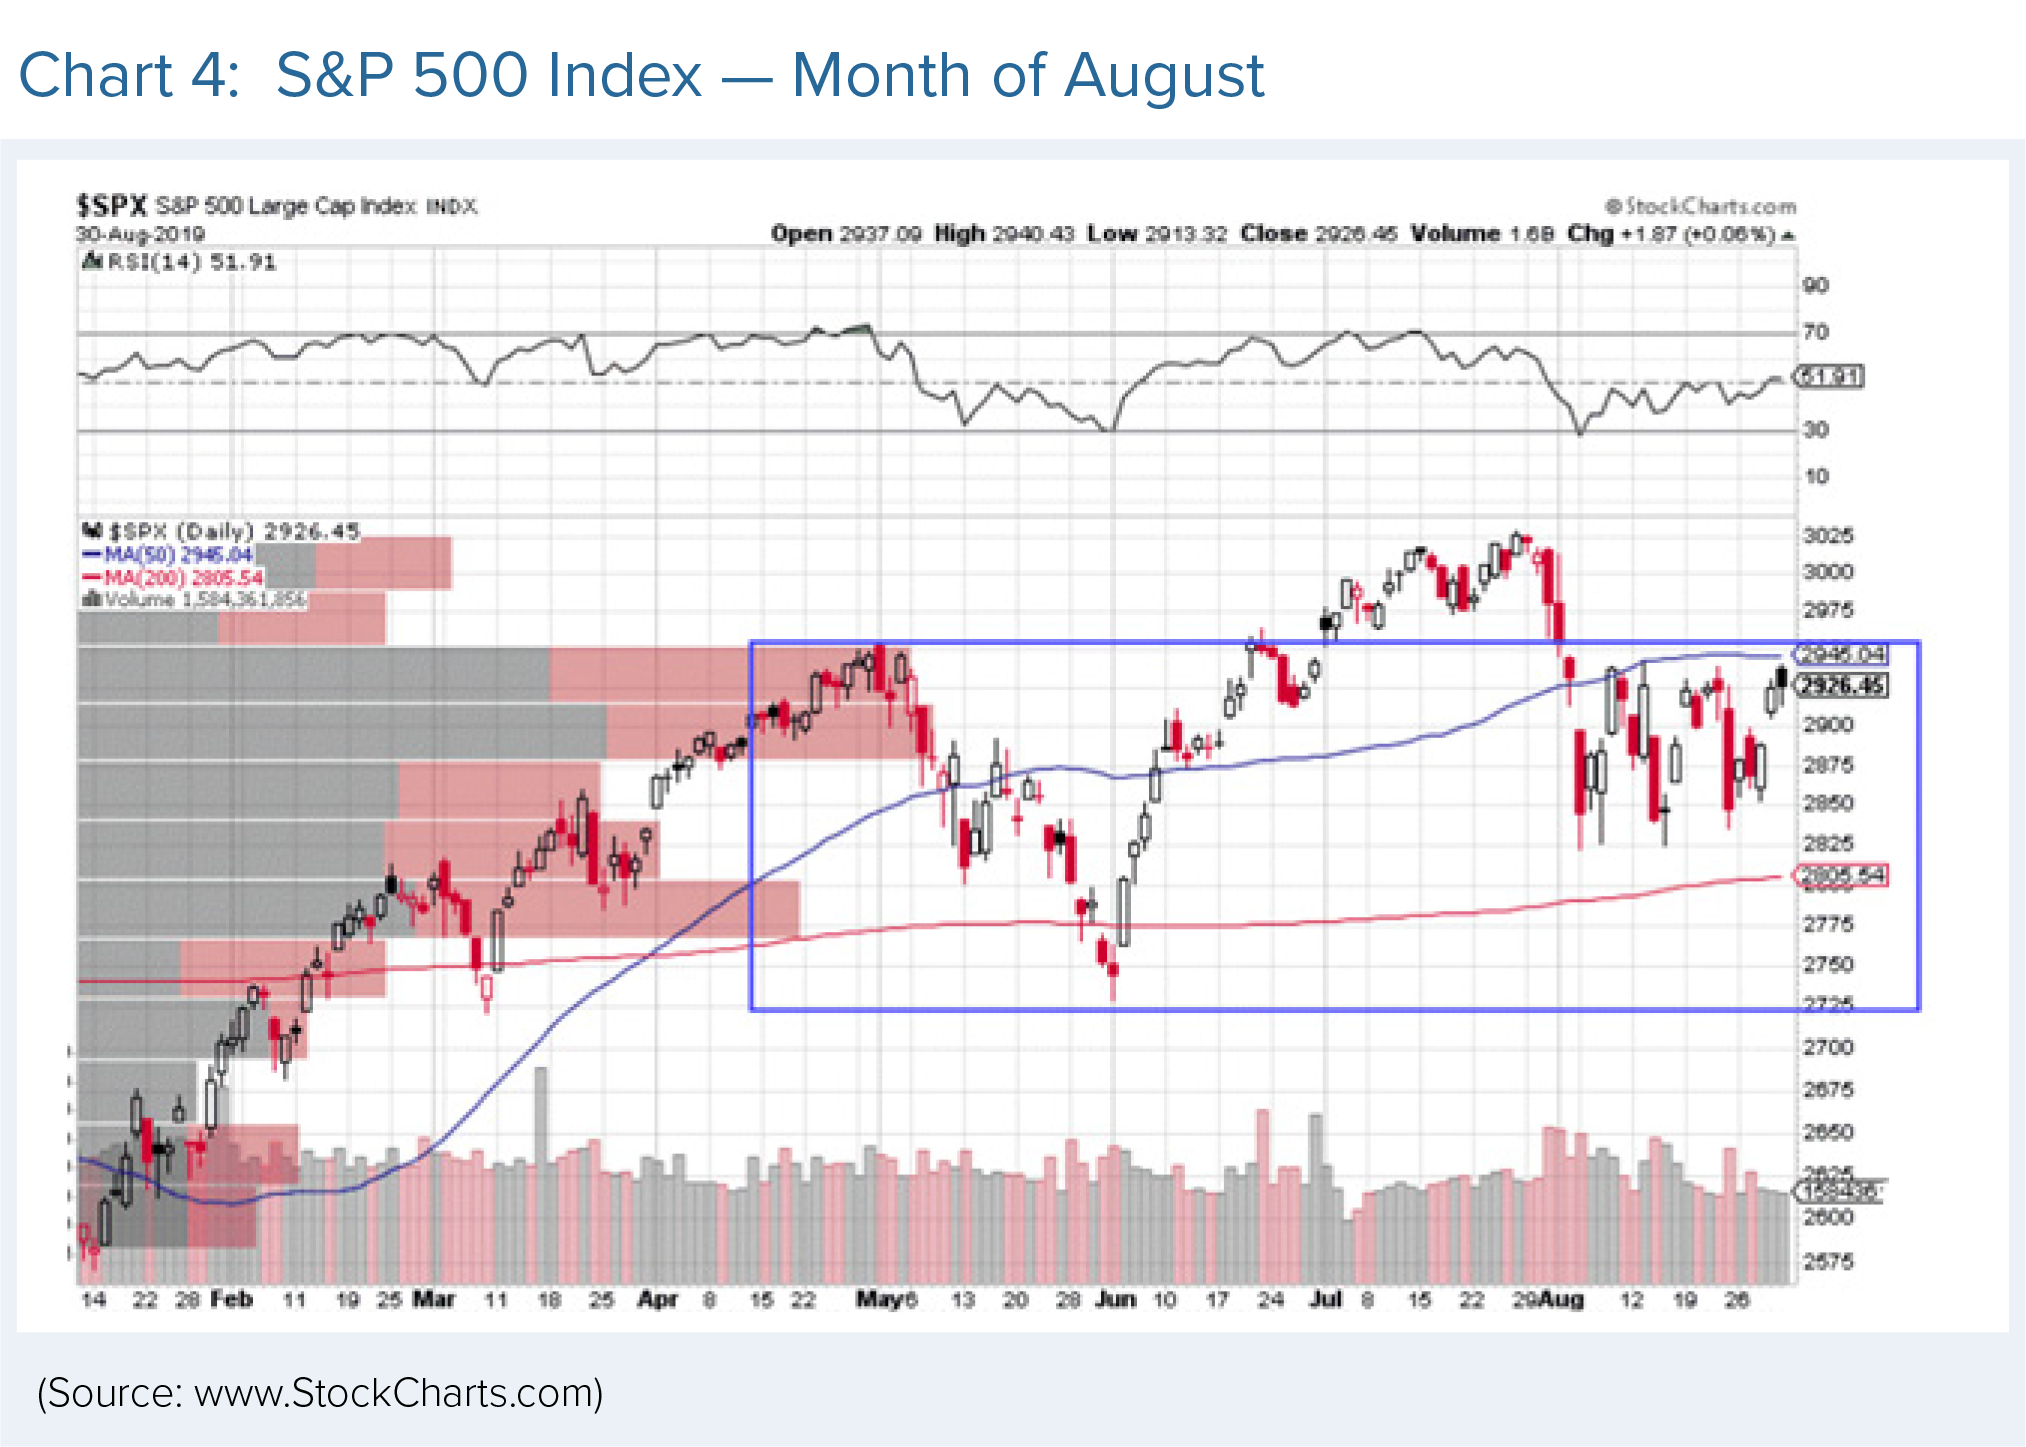 S&P 500 Index in the month of August